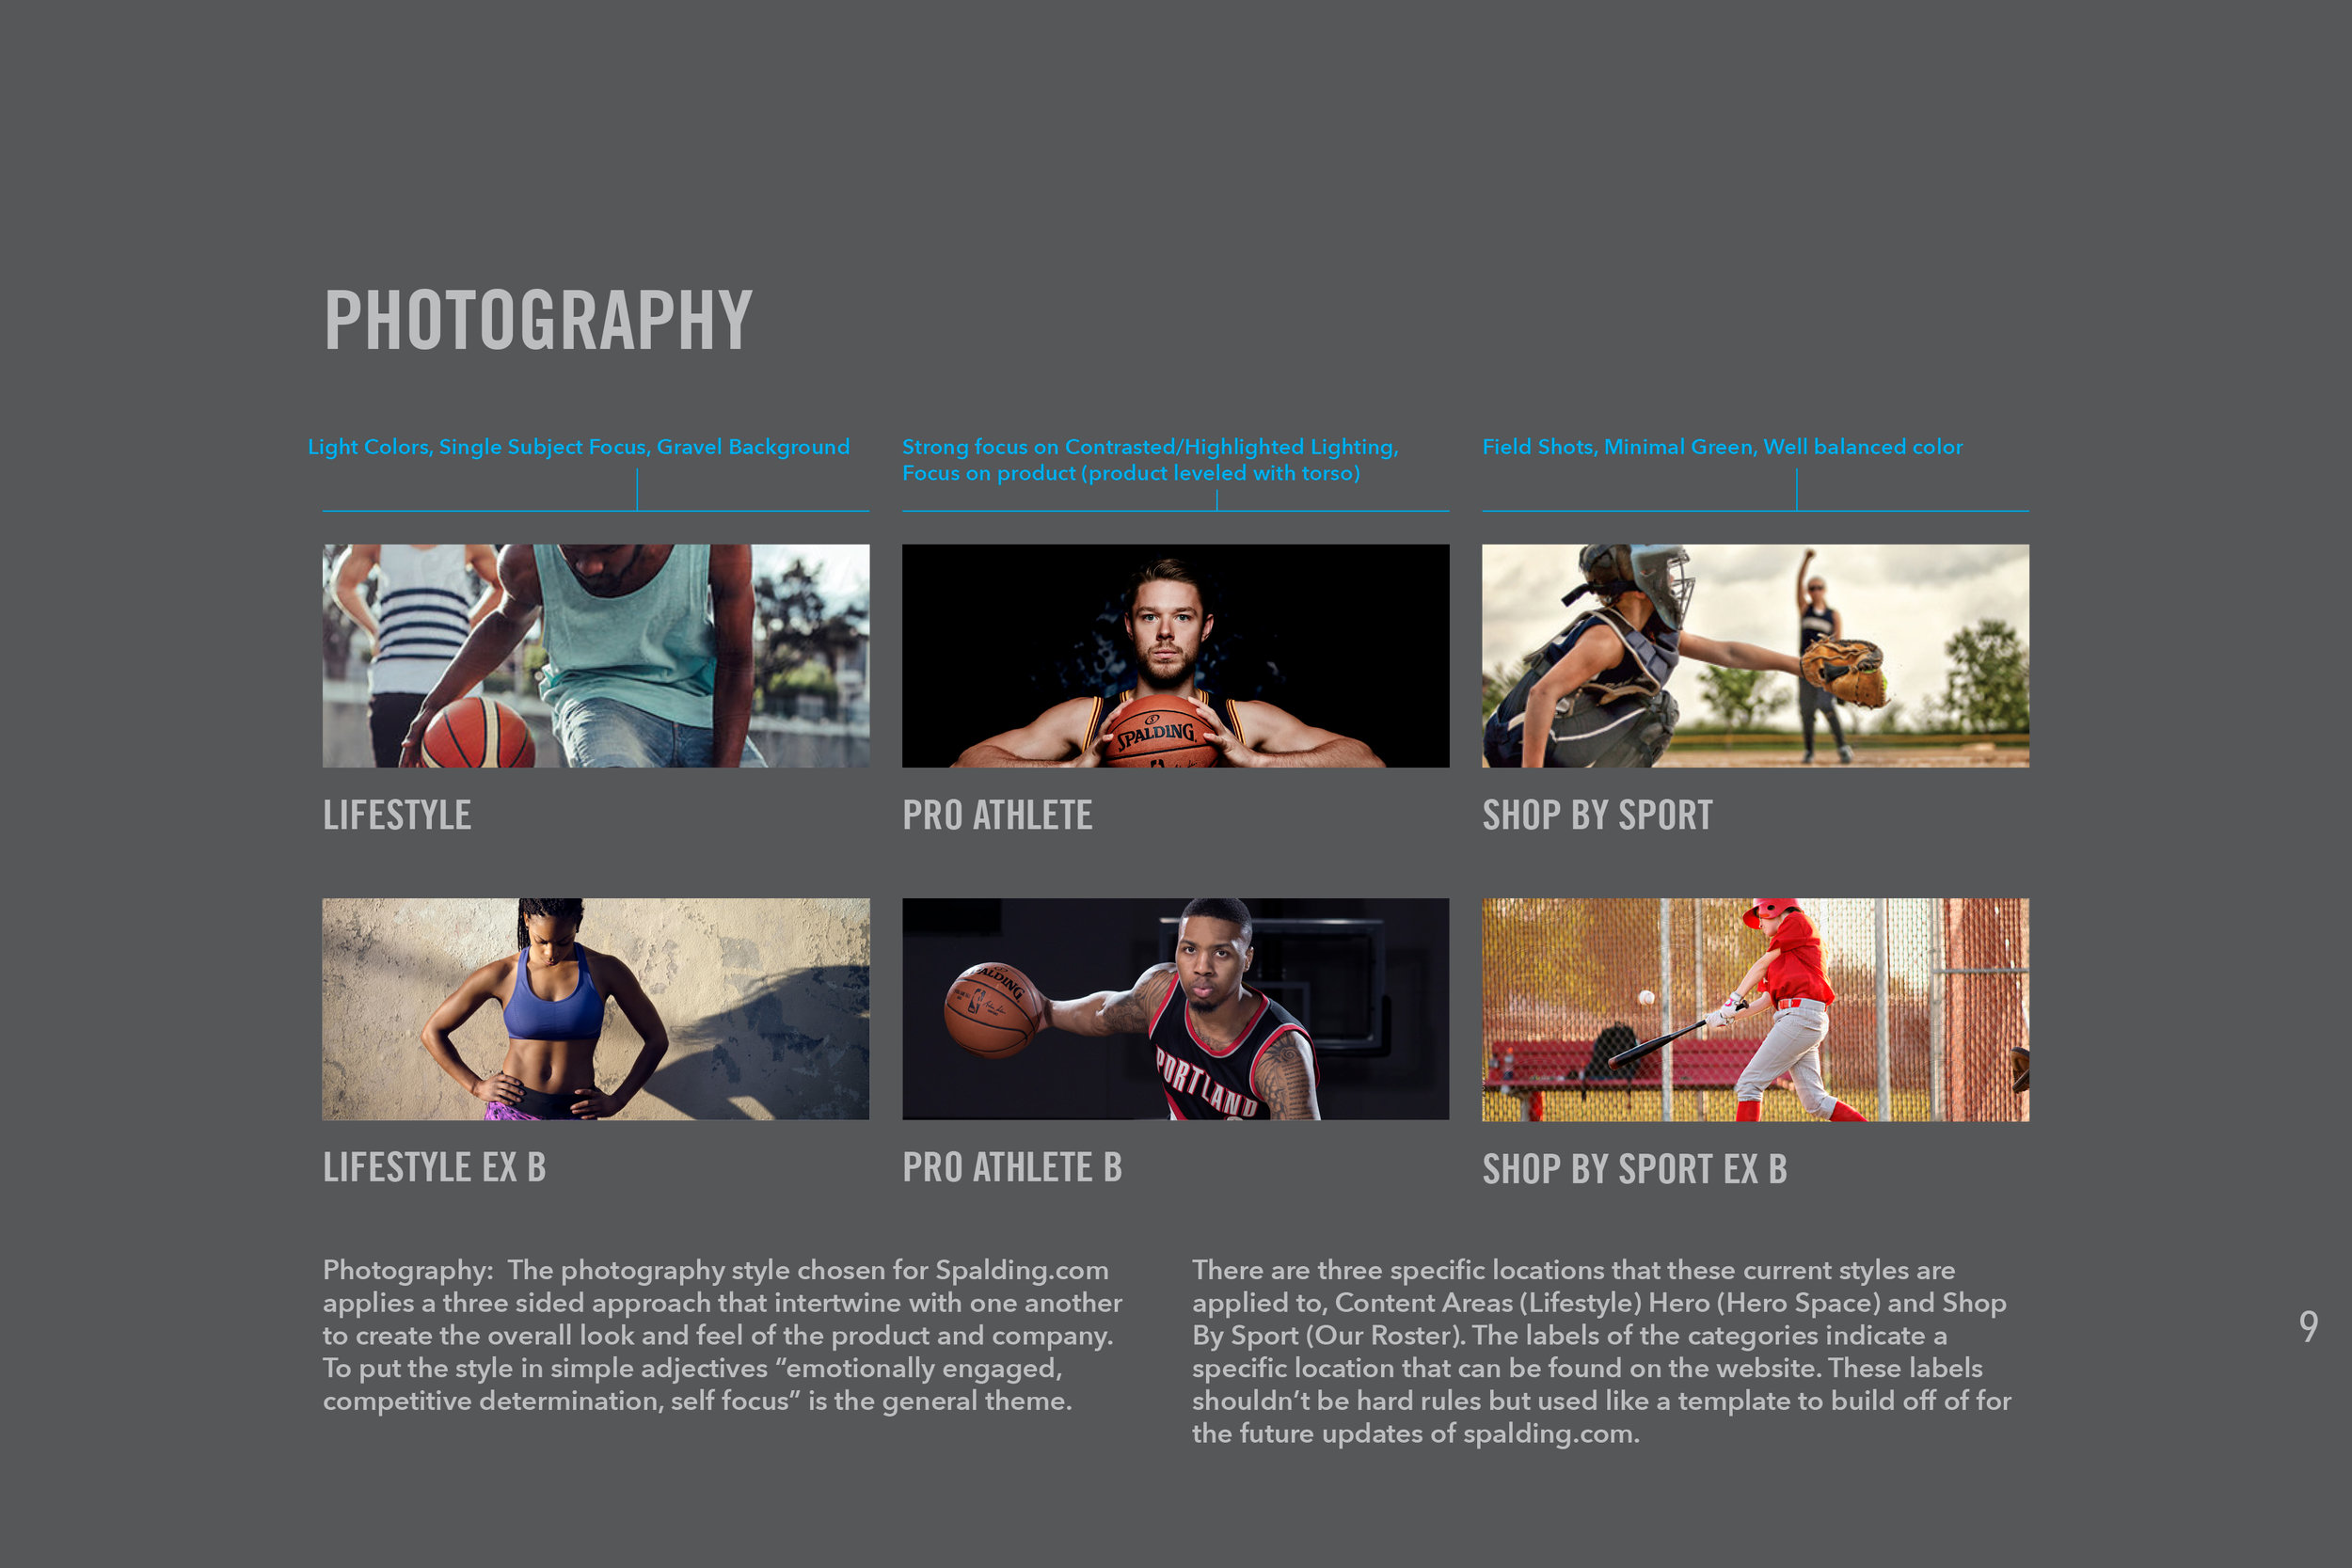 SPALDING_Styleguide_FINAL-0712-Edit 9.jpg